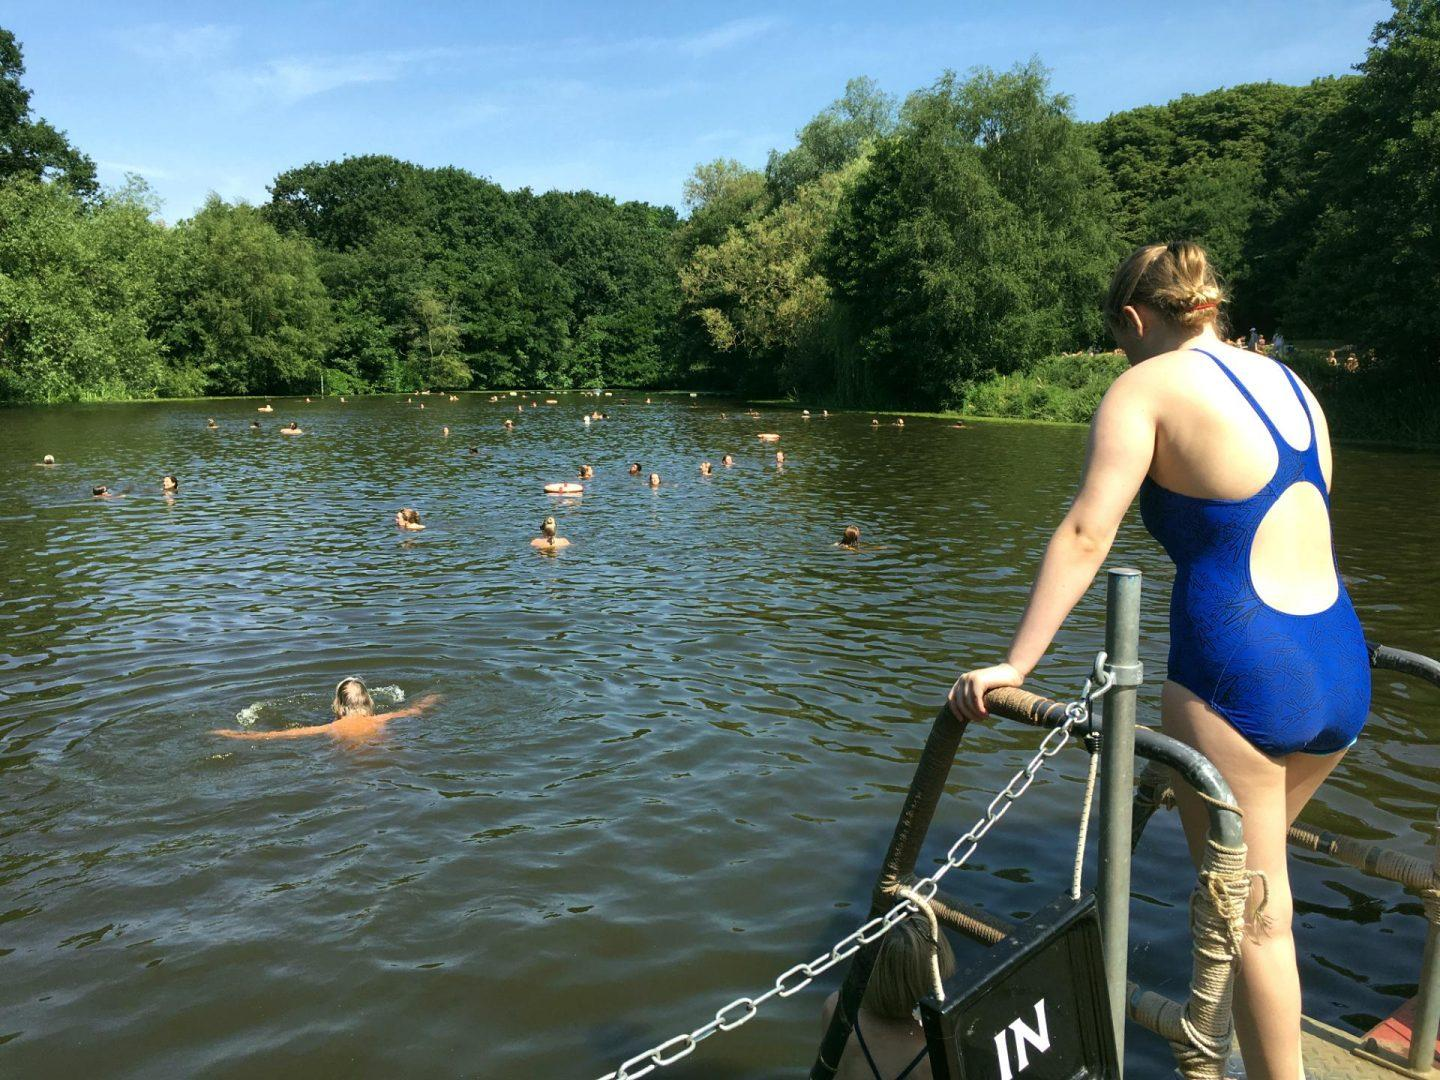 Wild swimming near London - Hampstead Heath The Girl Outdoors